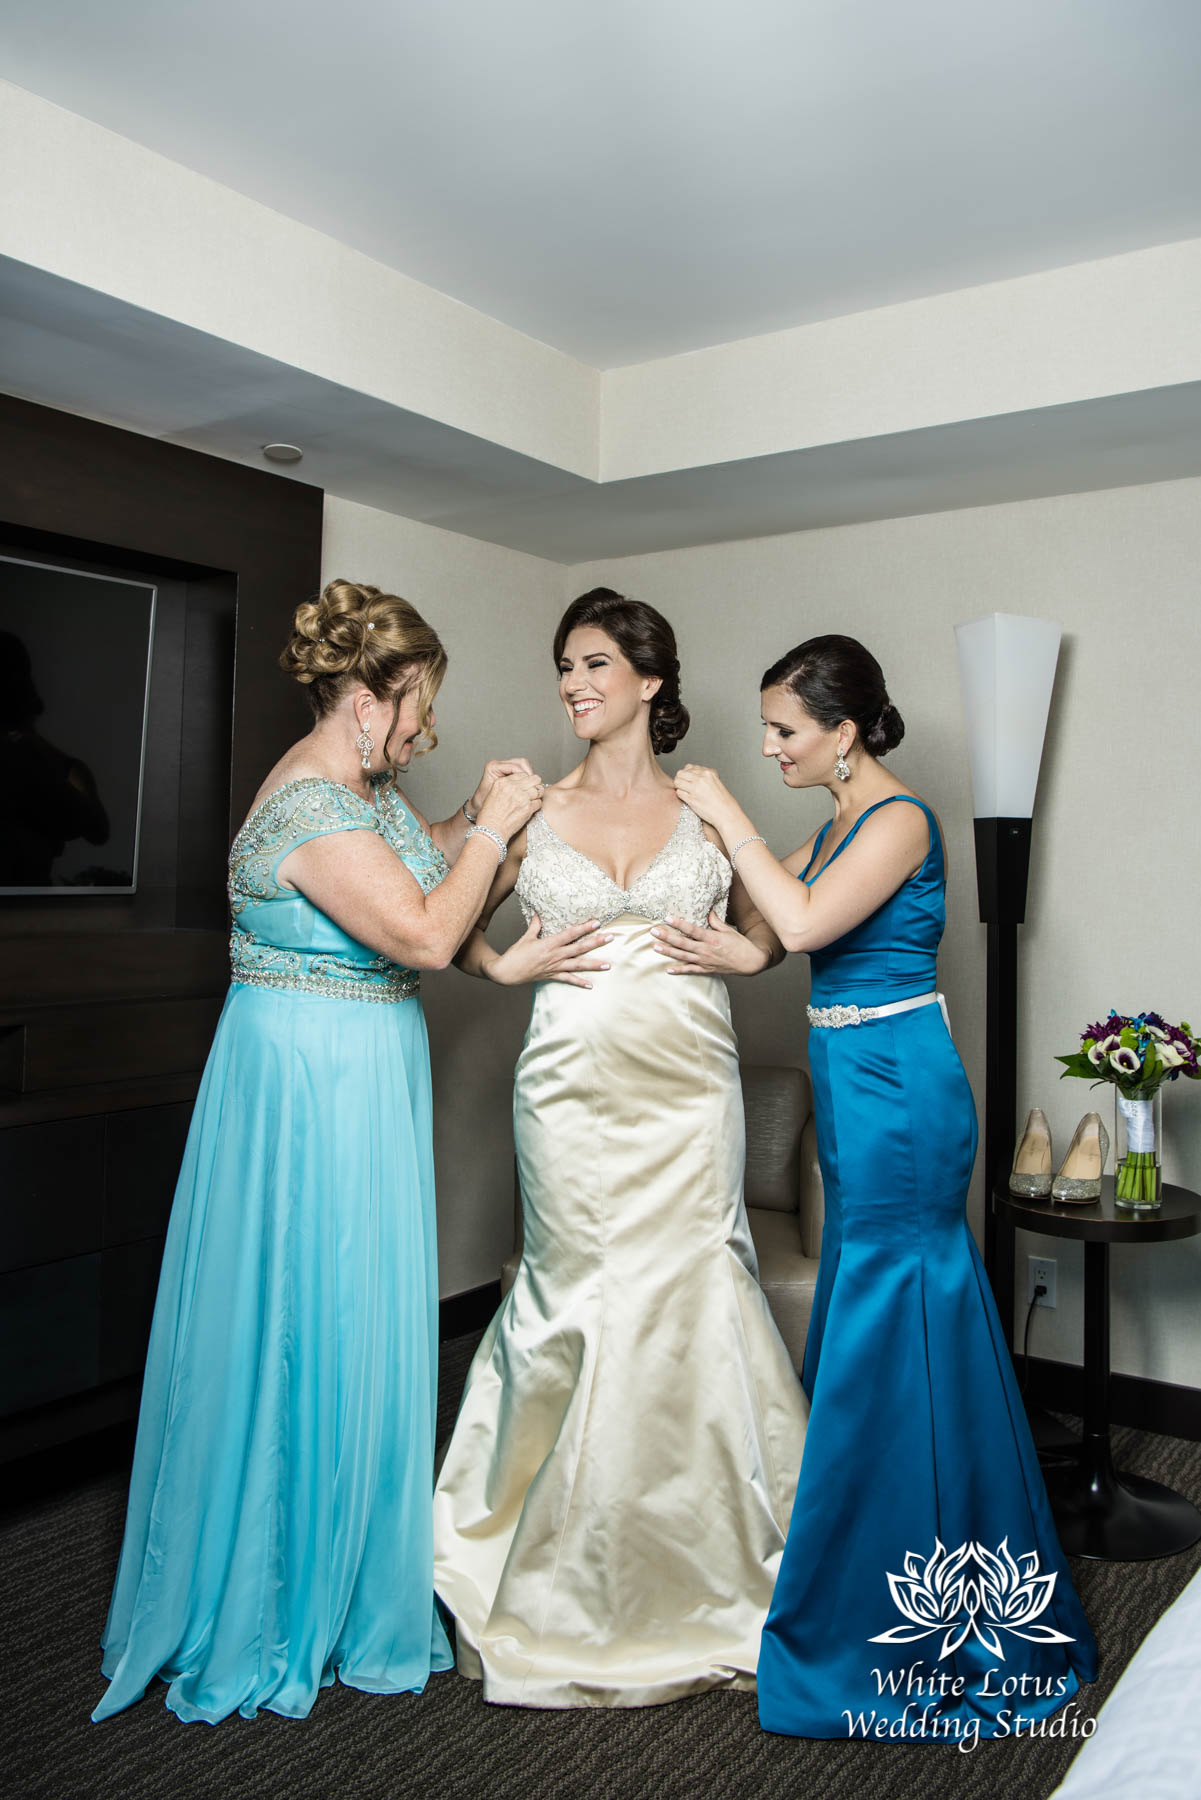 046 - Wedding - Toronto - Bride getting ready - PW